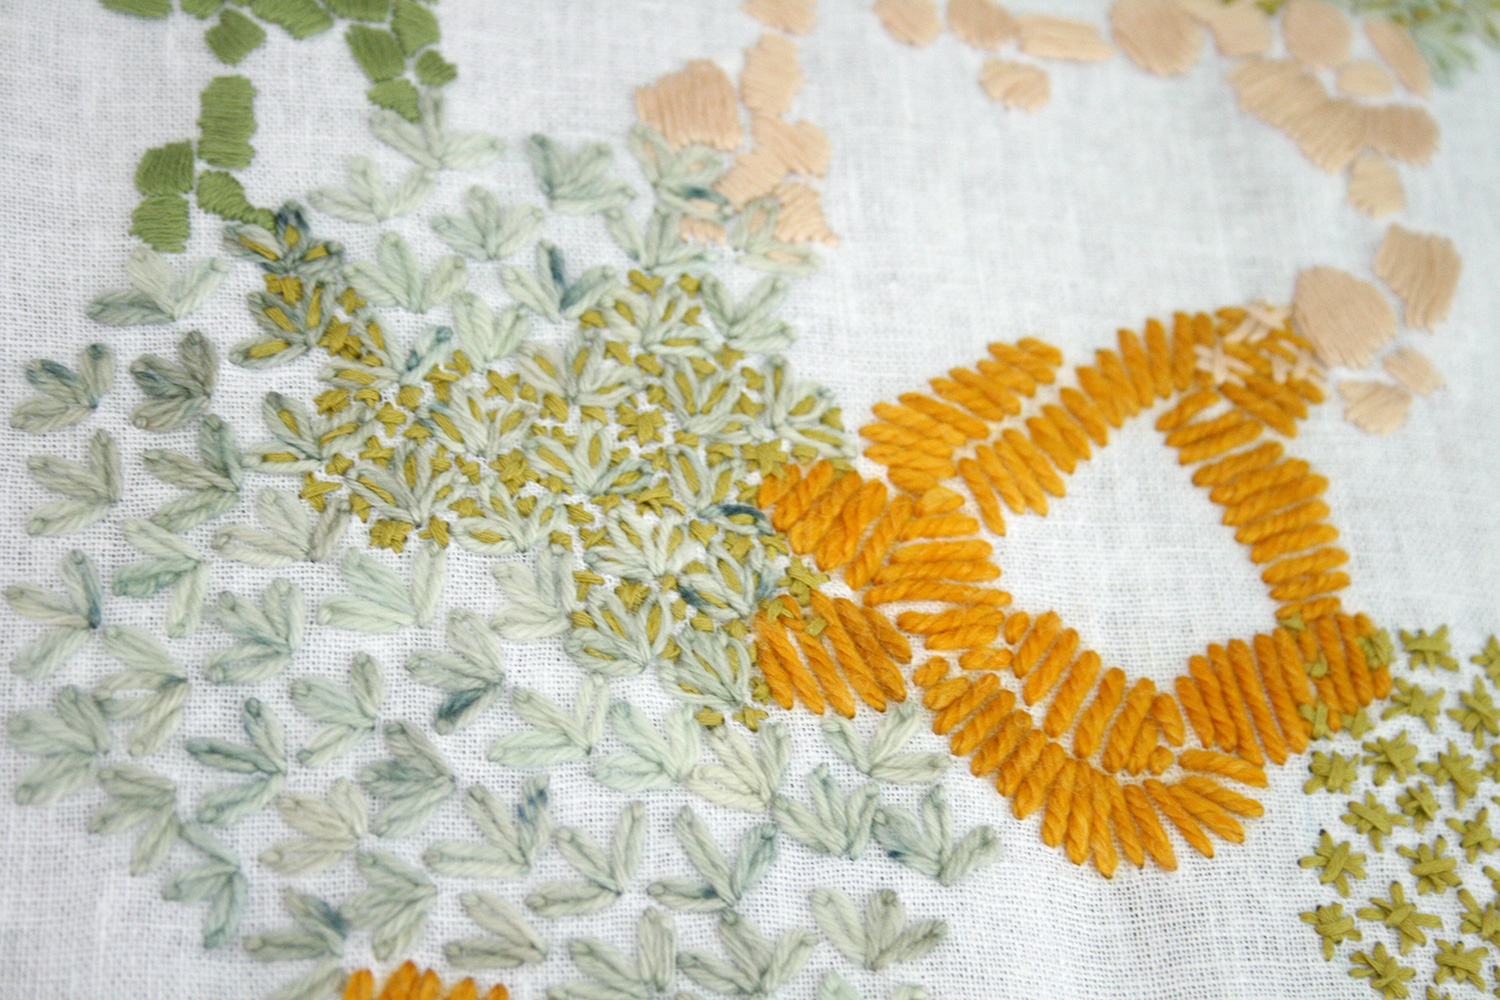 Another Detail Shot of the Gold, Grass and Peach Embroidered Tapestry by Amanda Farquharson